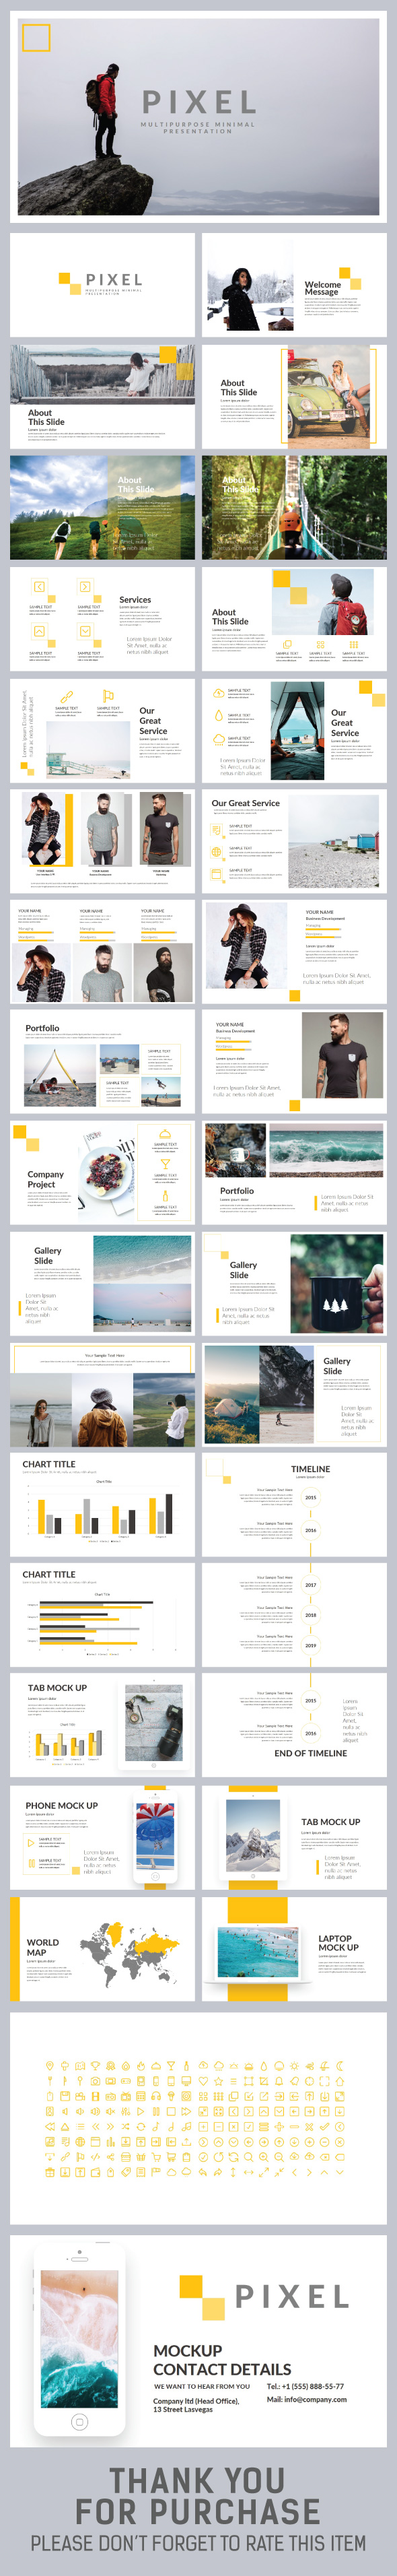 Pixel Keynote Template - Creative Keynote Templates